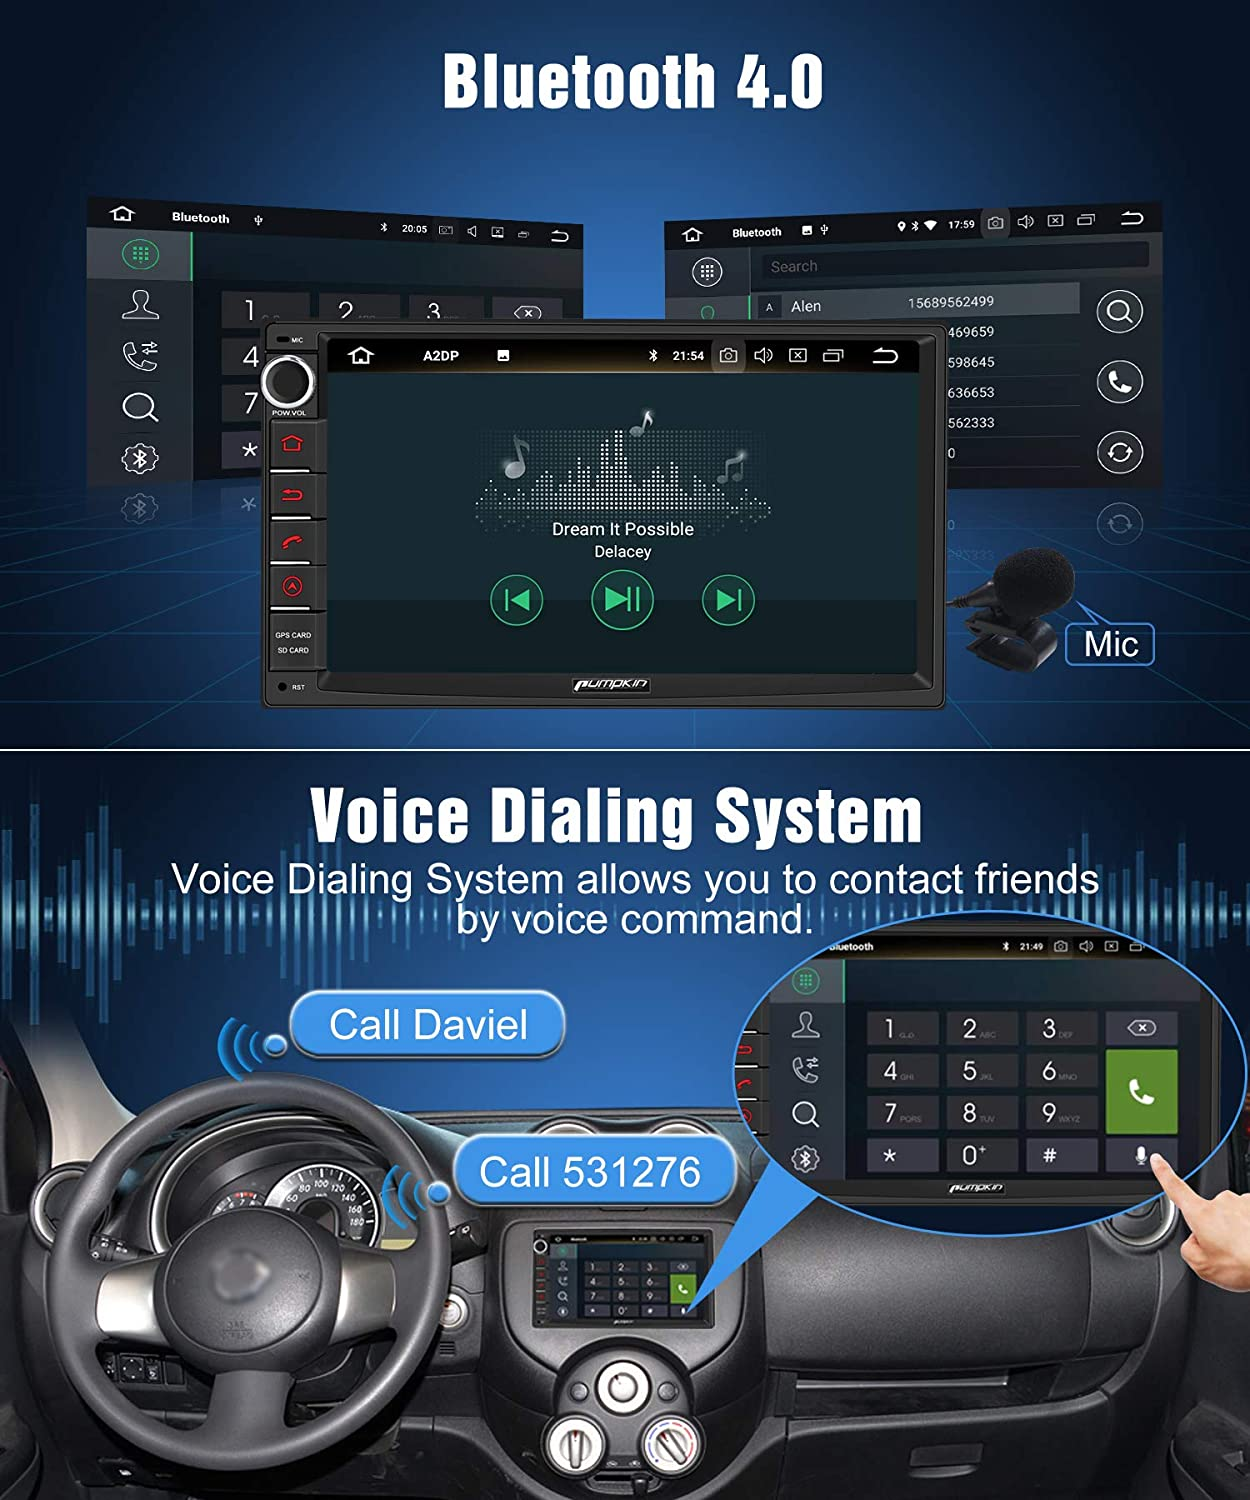 WiFi 4G USB//SD Voice Dialing 7 Touch Screen 18 Month Warranty PUPMKIN Android 9.0 Double Din Car Stereo with Sat Nav Bluetooth Support Android Auto DAB